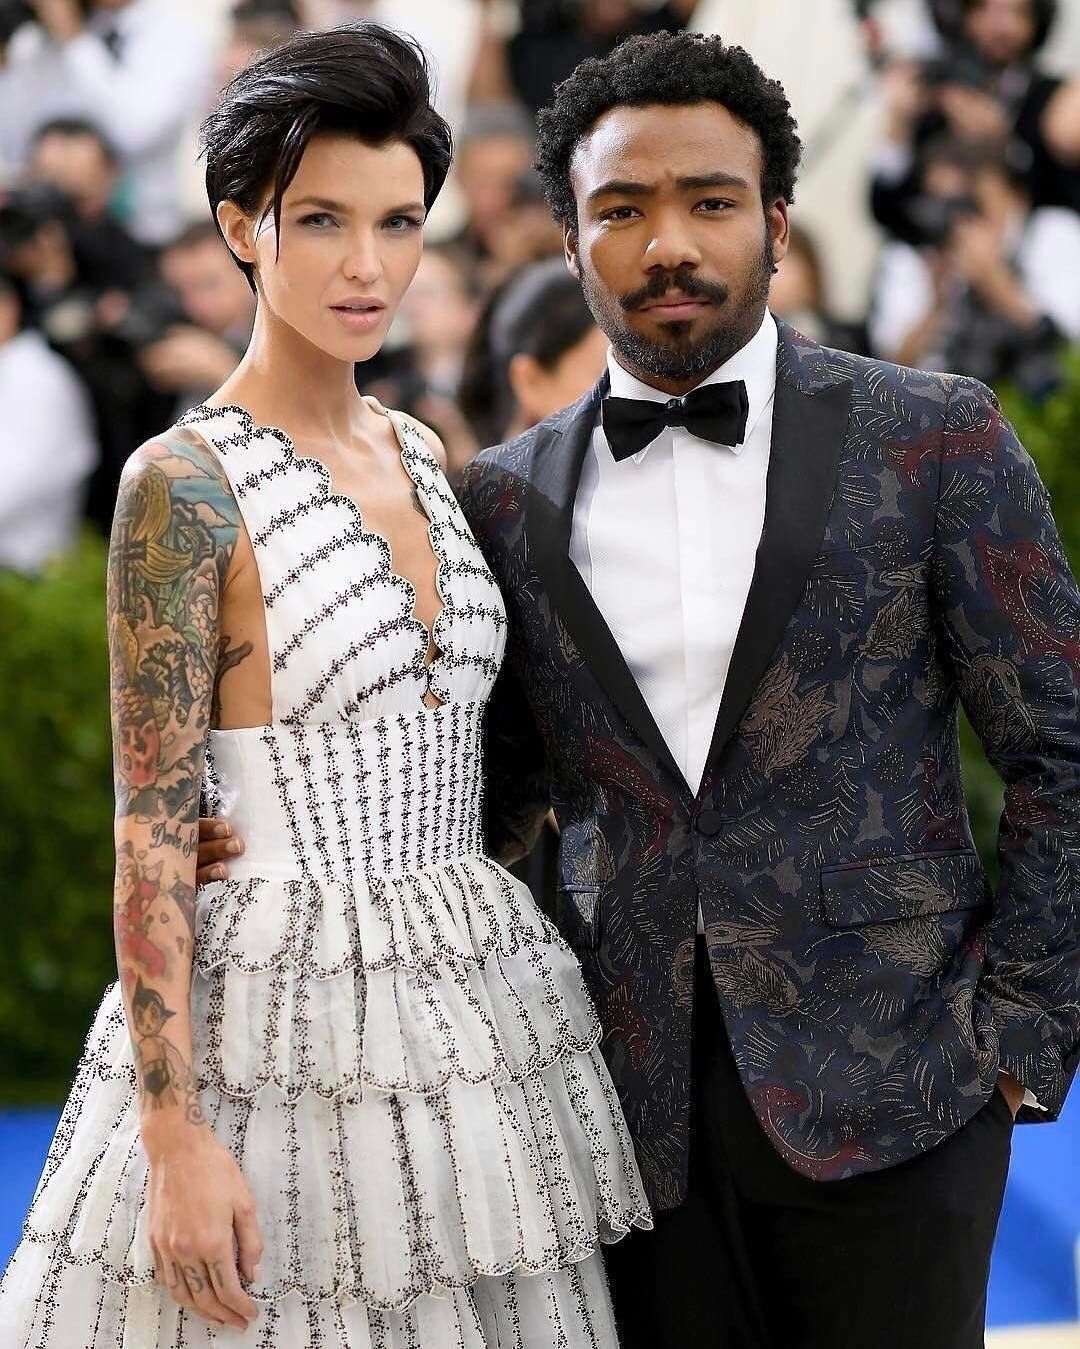 """167.8k Likes, 902 Comments - Ruby Rose (@rubyrose) on Instagram: """"My date was the most handsome date of all. #burberry #metball"""""""